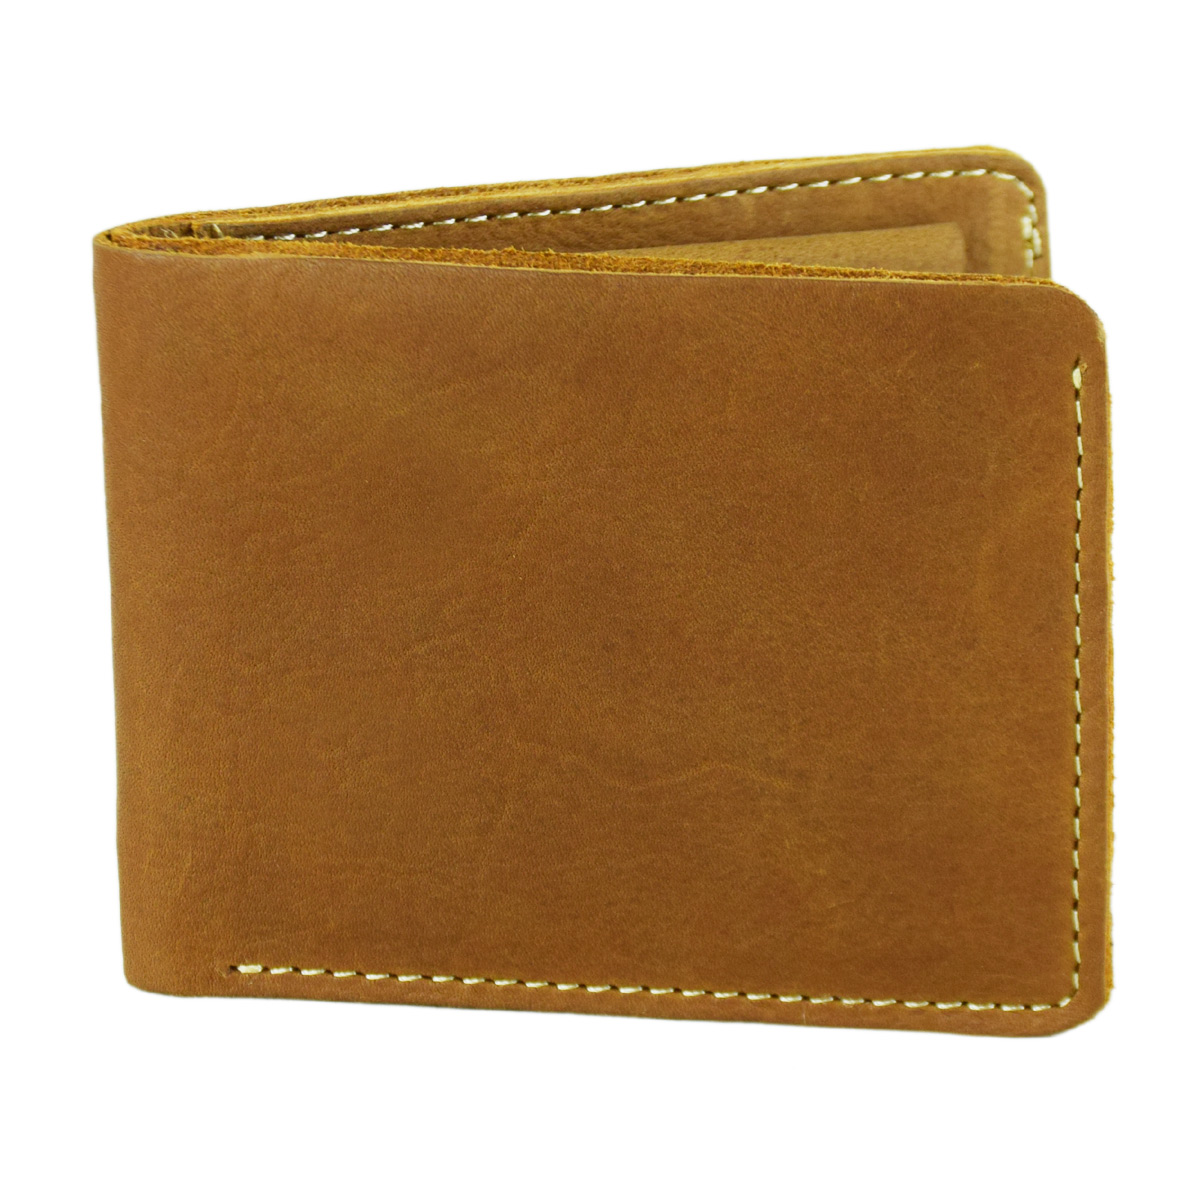 BROWN WALLET UNIQUE COINS POCKET